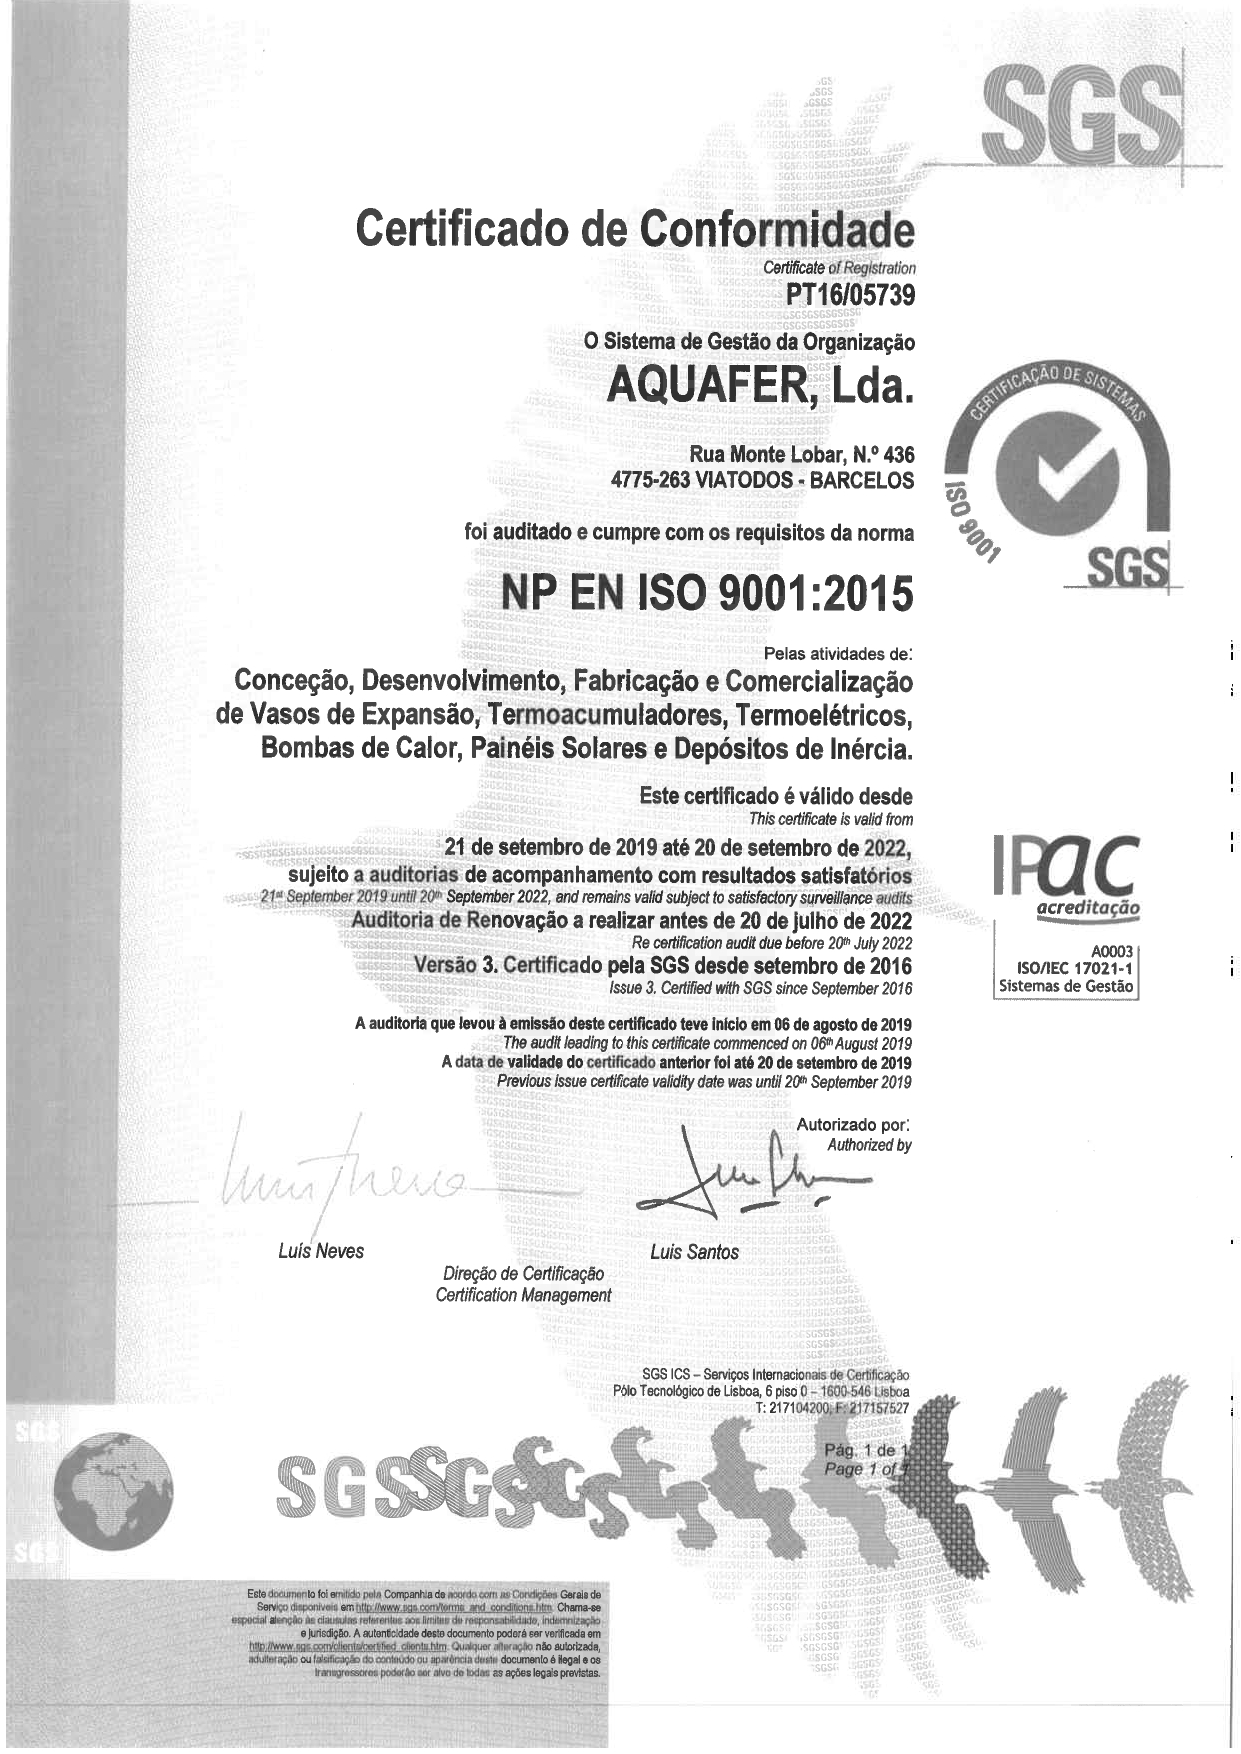 Aquafer implements Quality certification